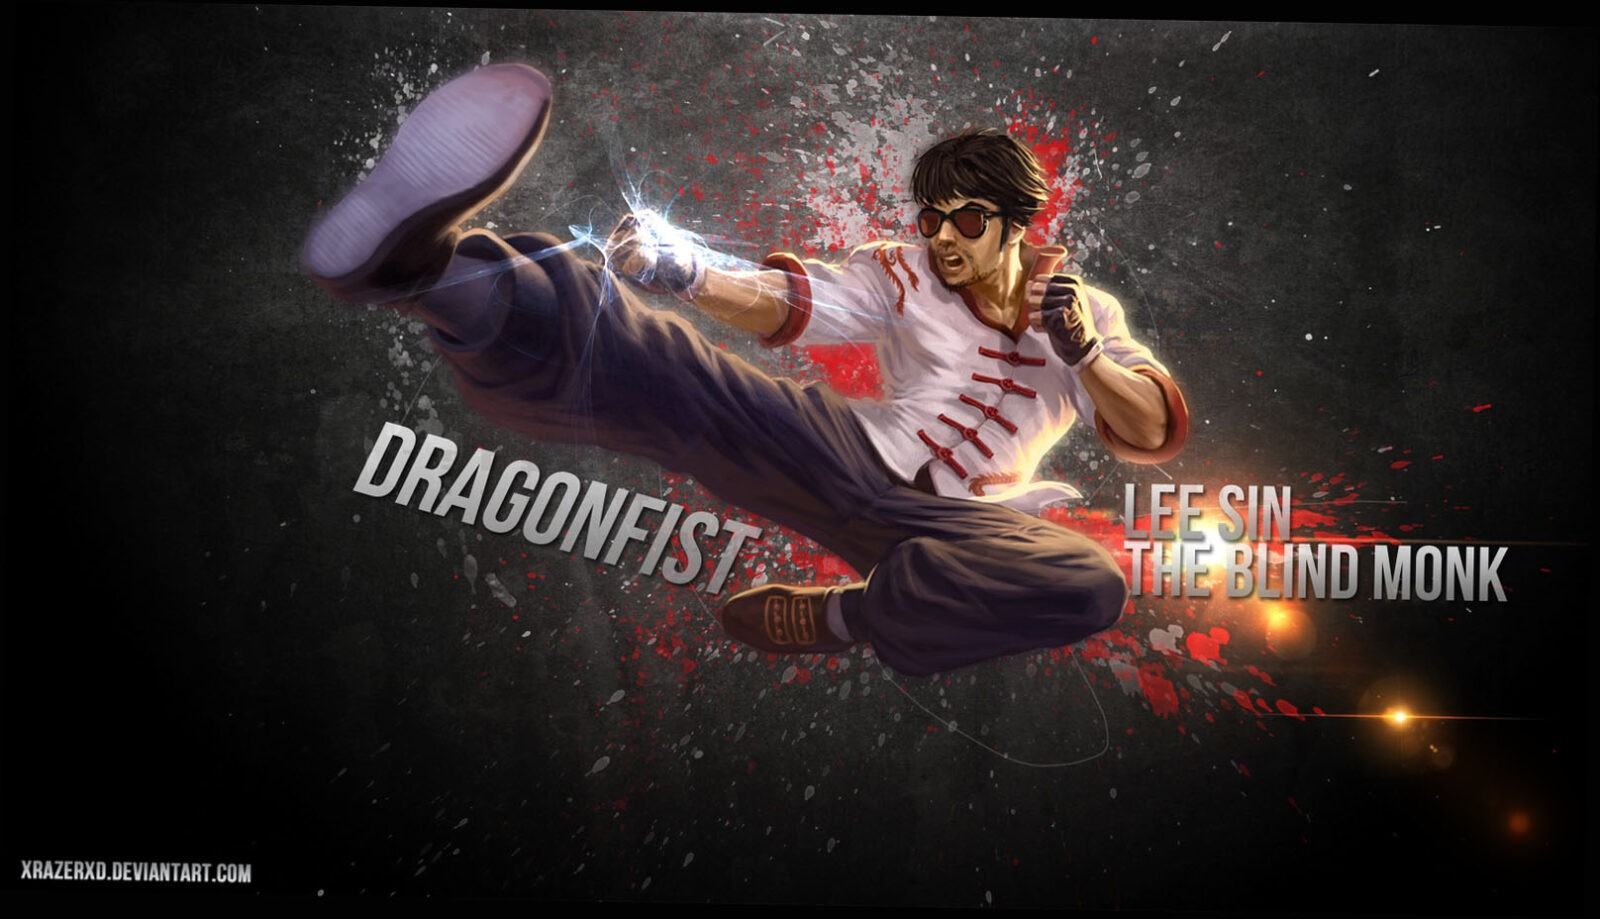 Lee Sin League of Legends pictures